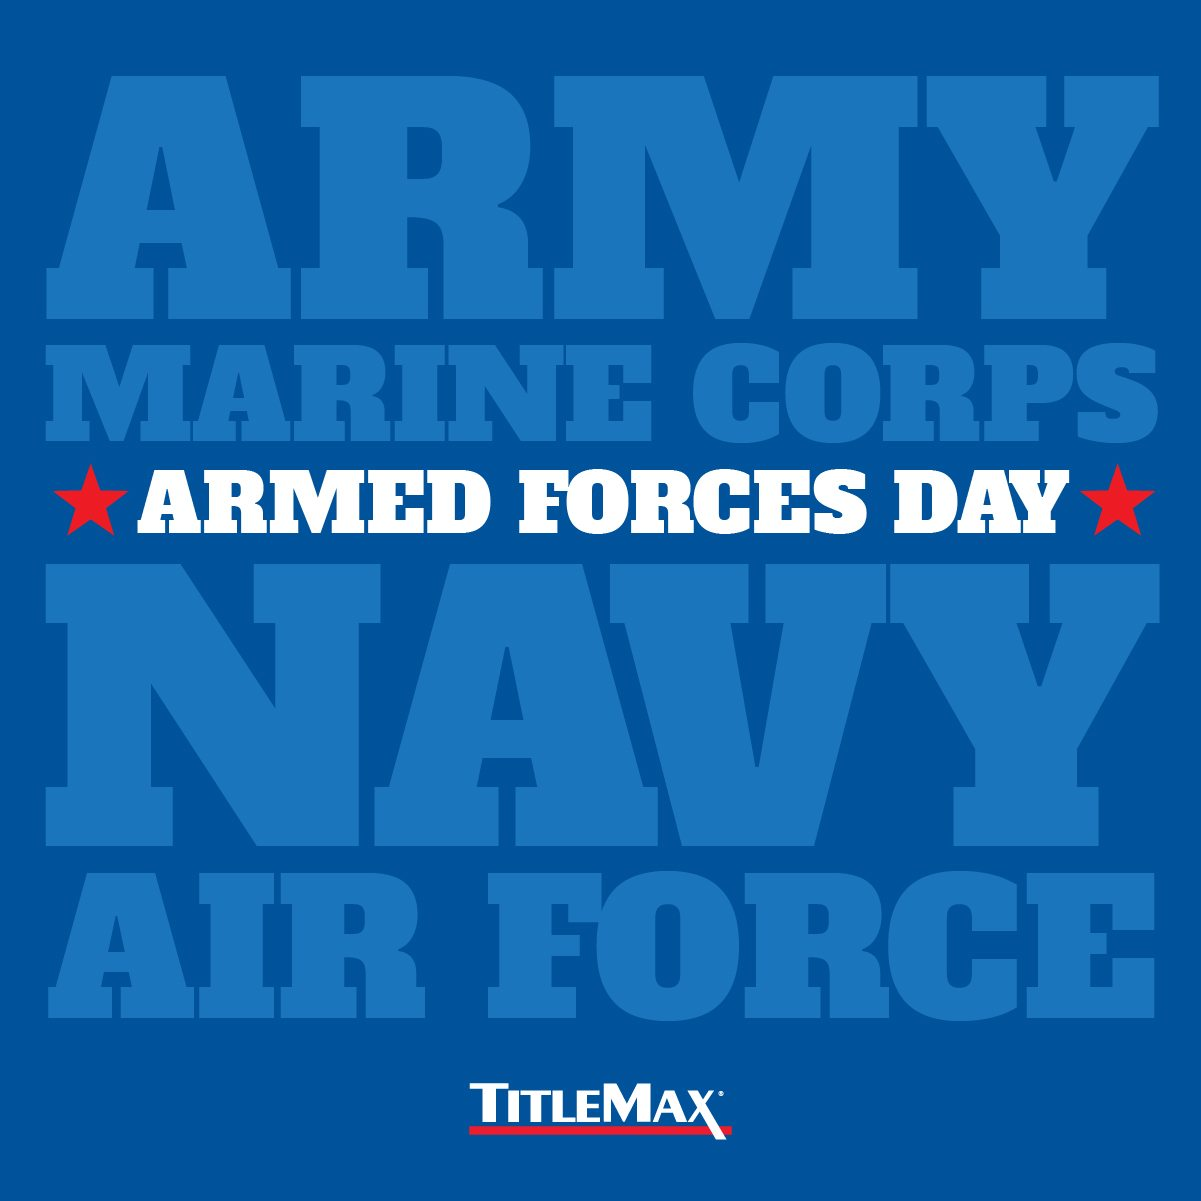 Celebrating Armed Forces Day